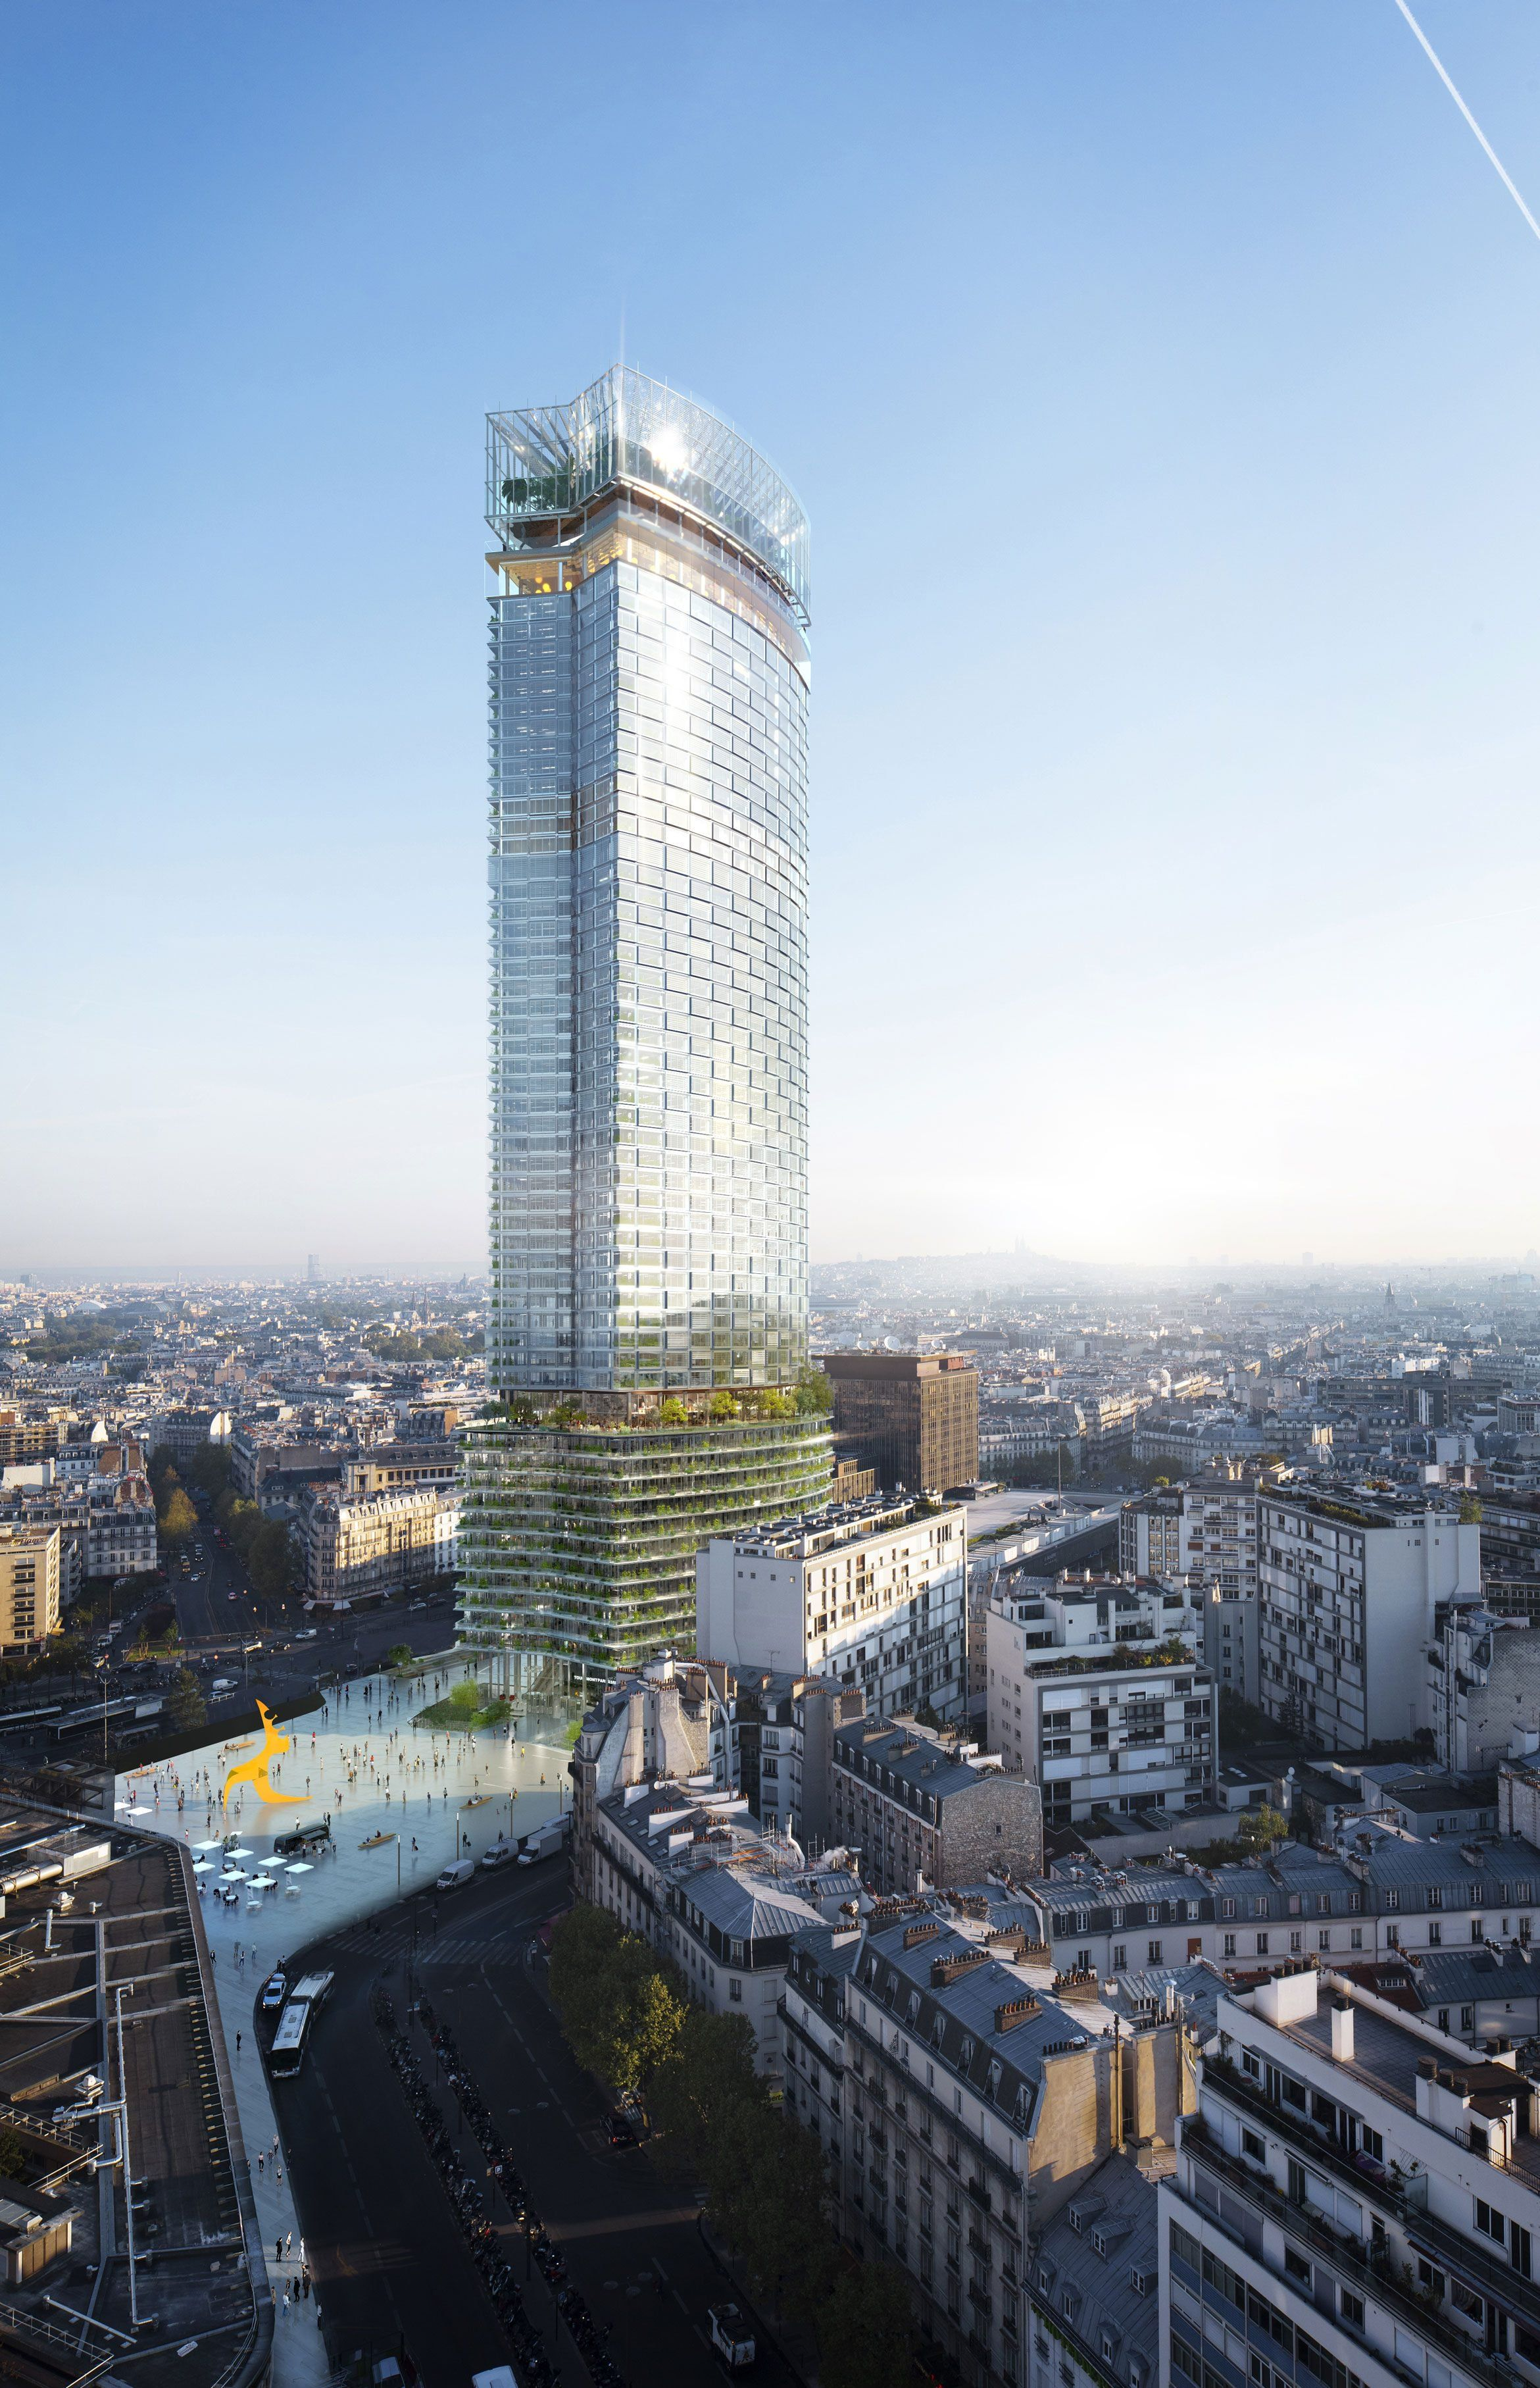 French studio Nouvelle AOM has been selected to overhaul the Tour Montparnasse skyscraper in time